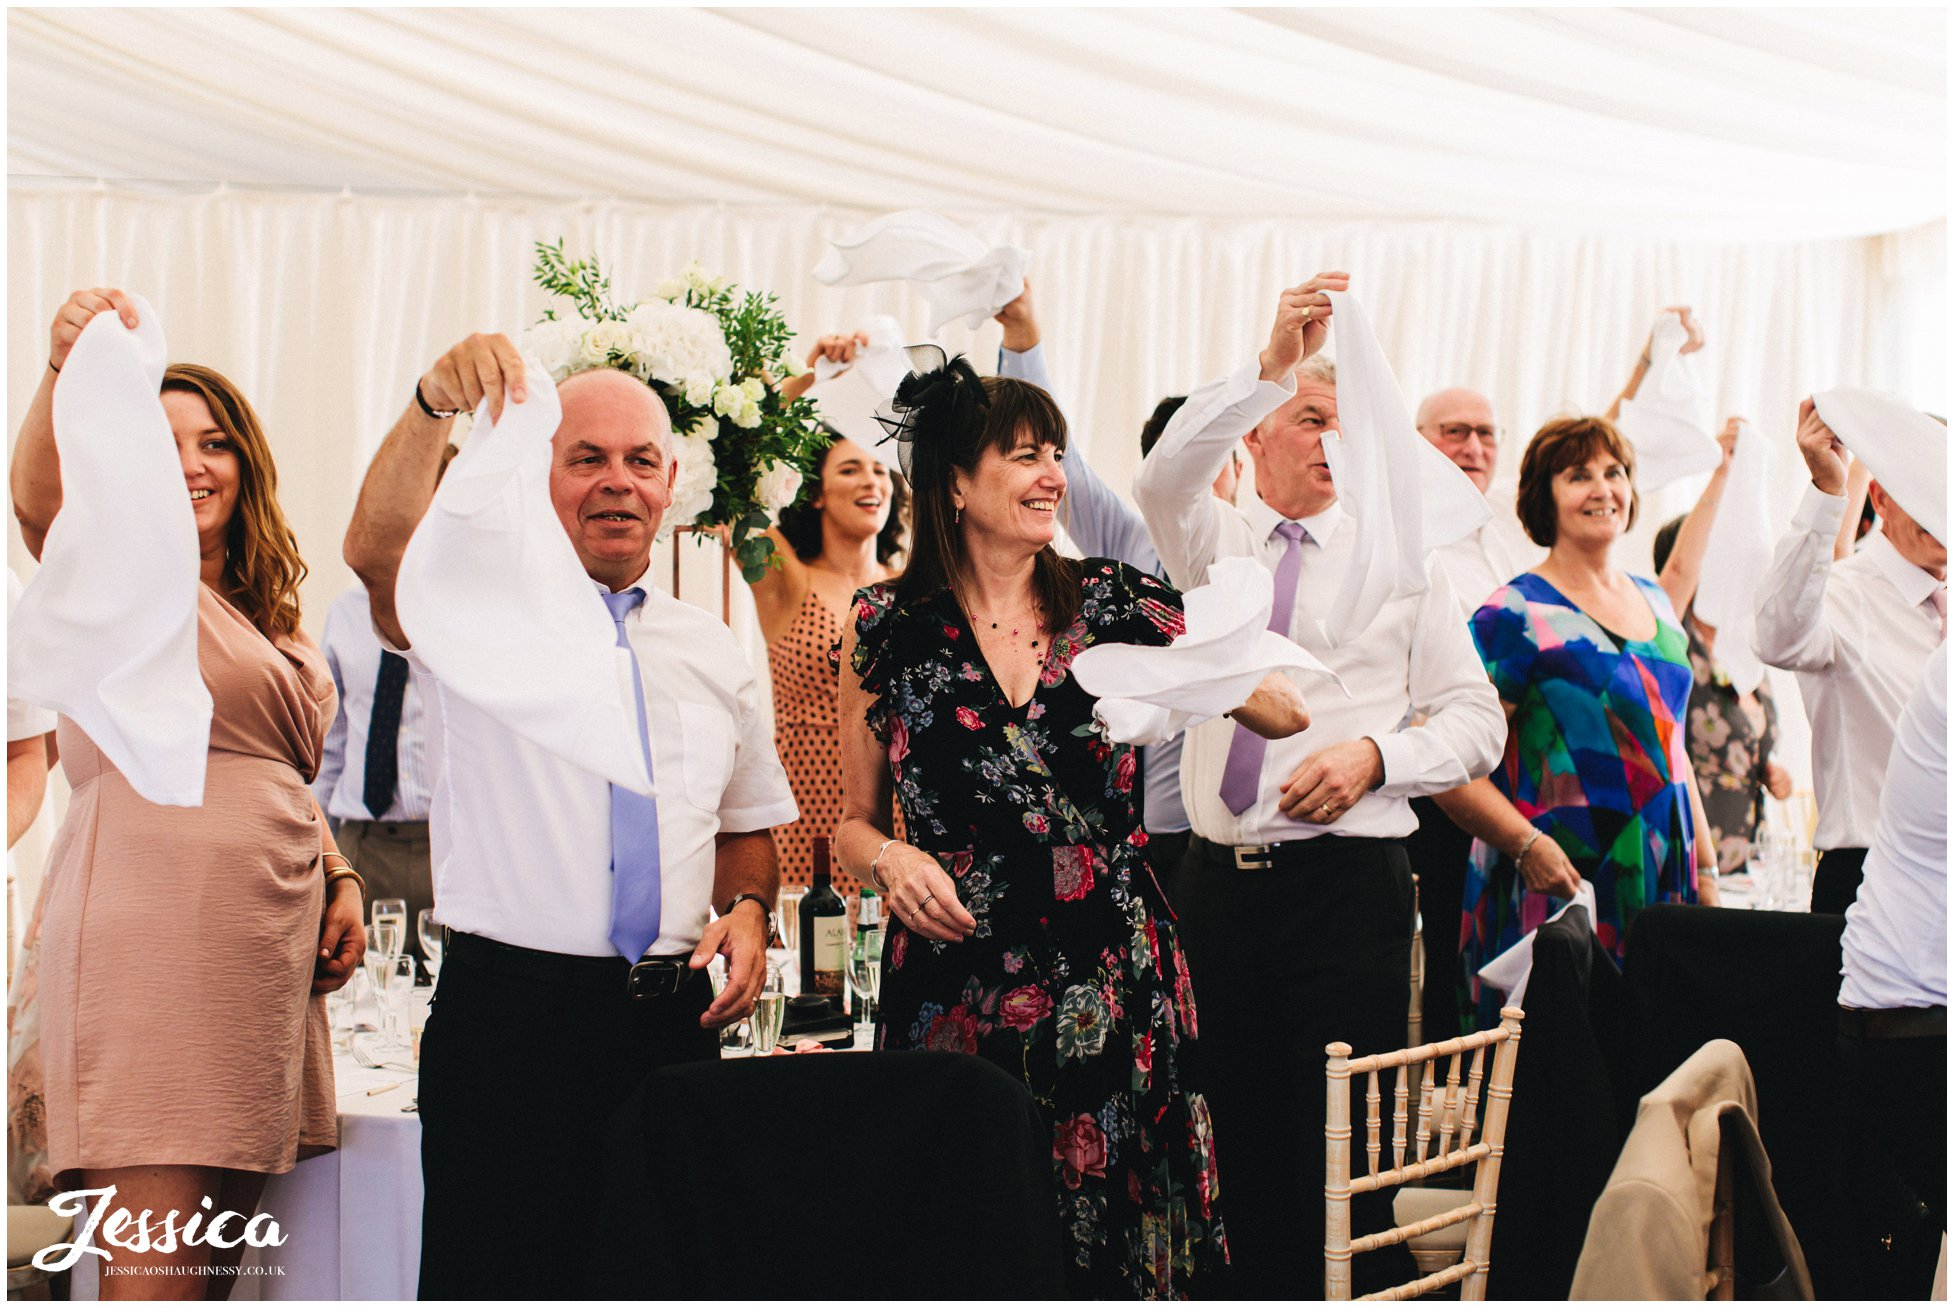 guests wave their napkins as the newly wed's are announced in